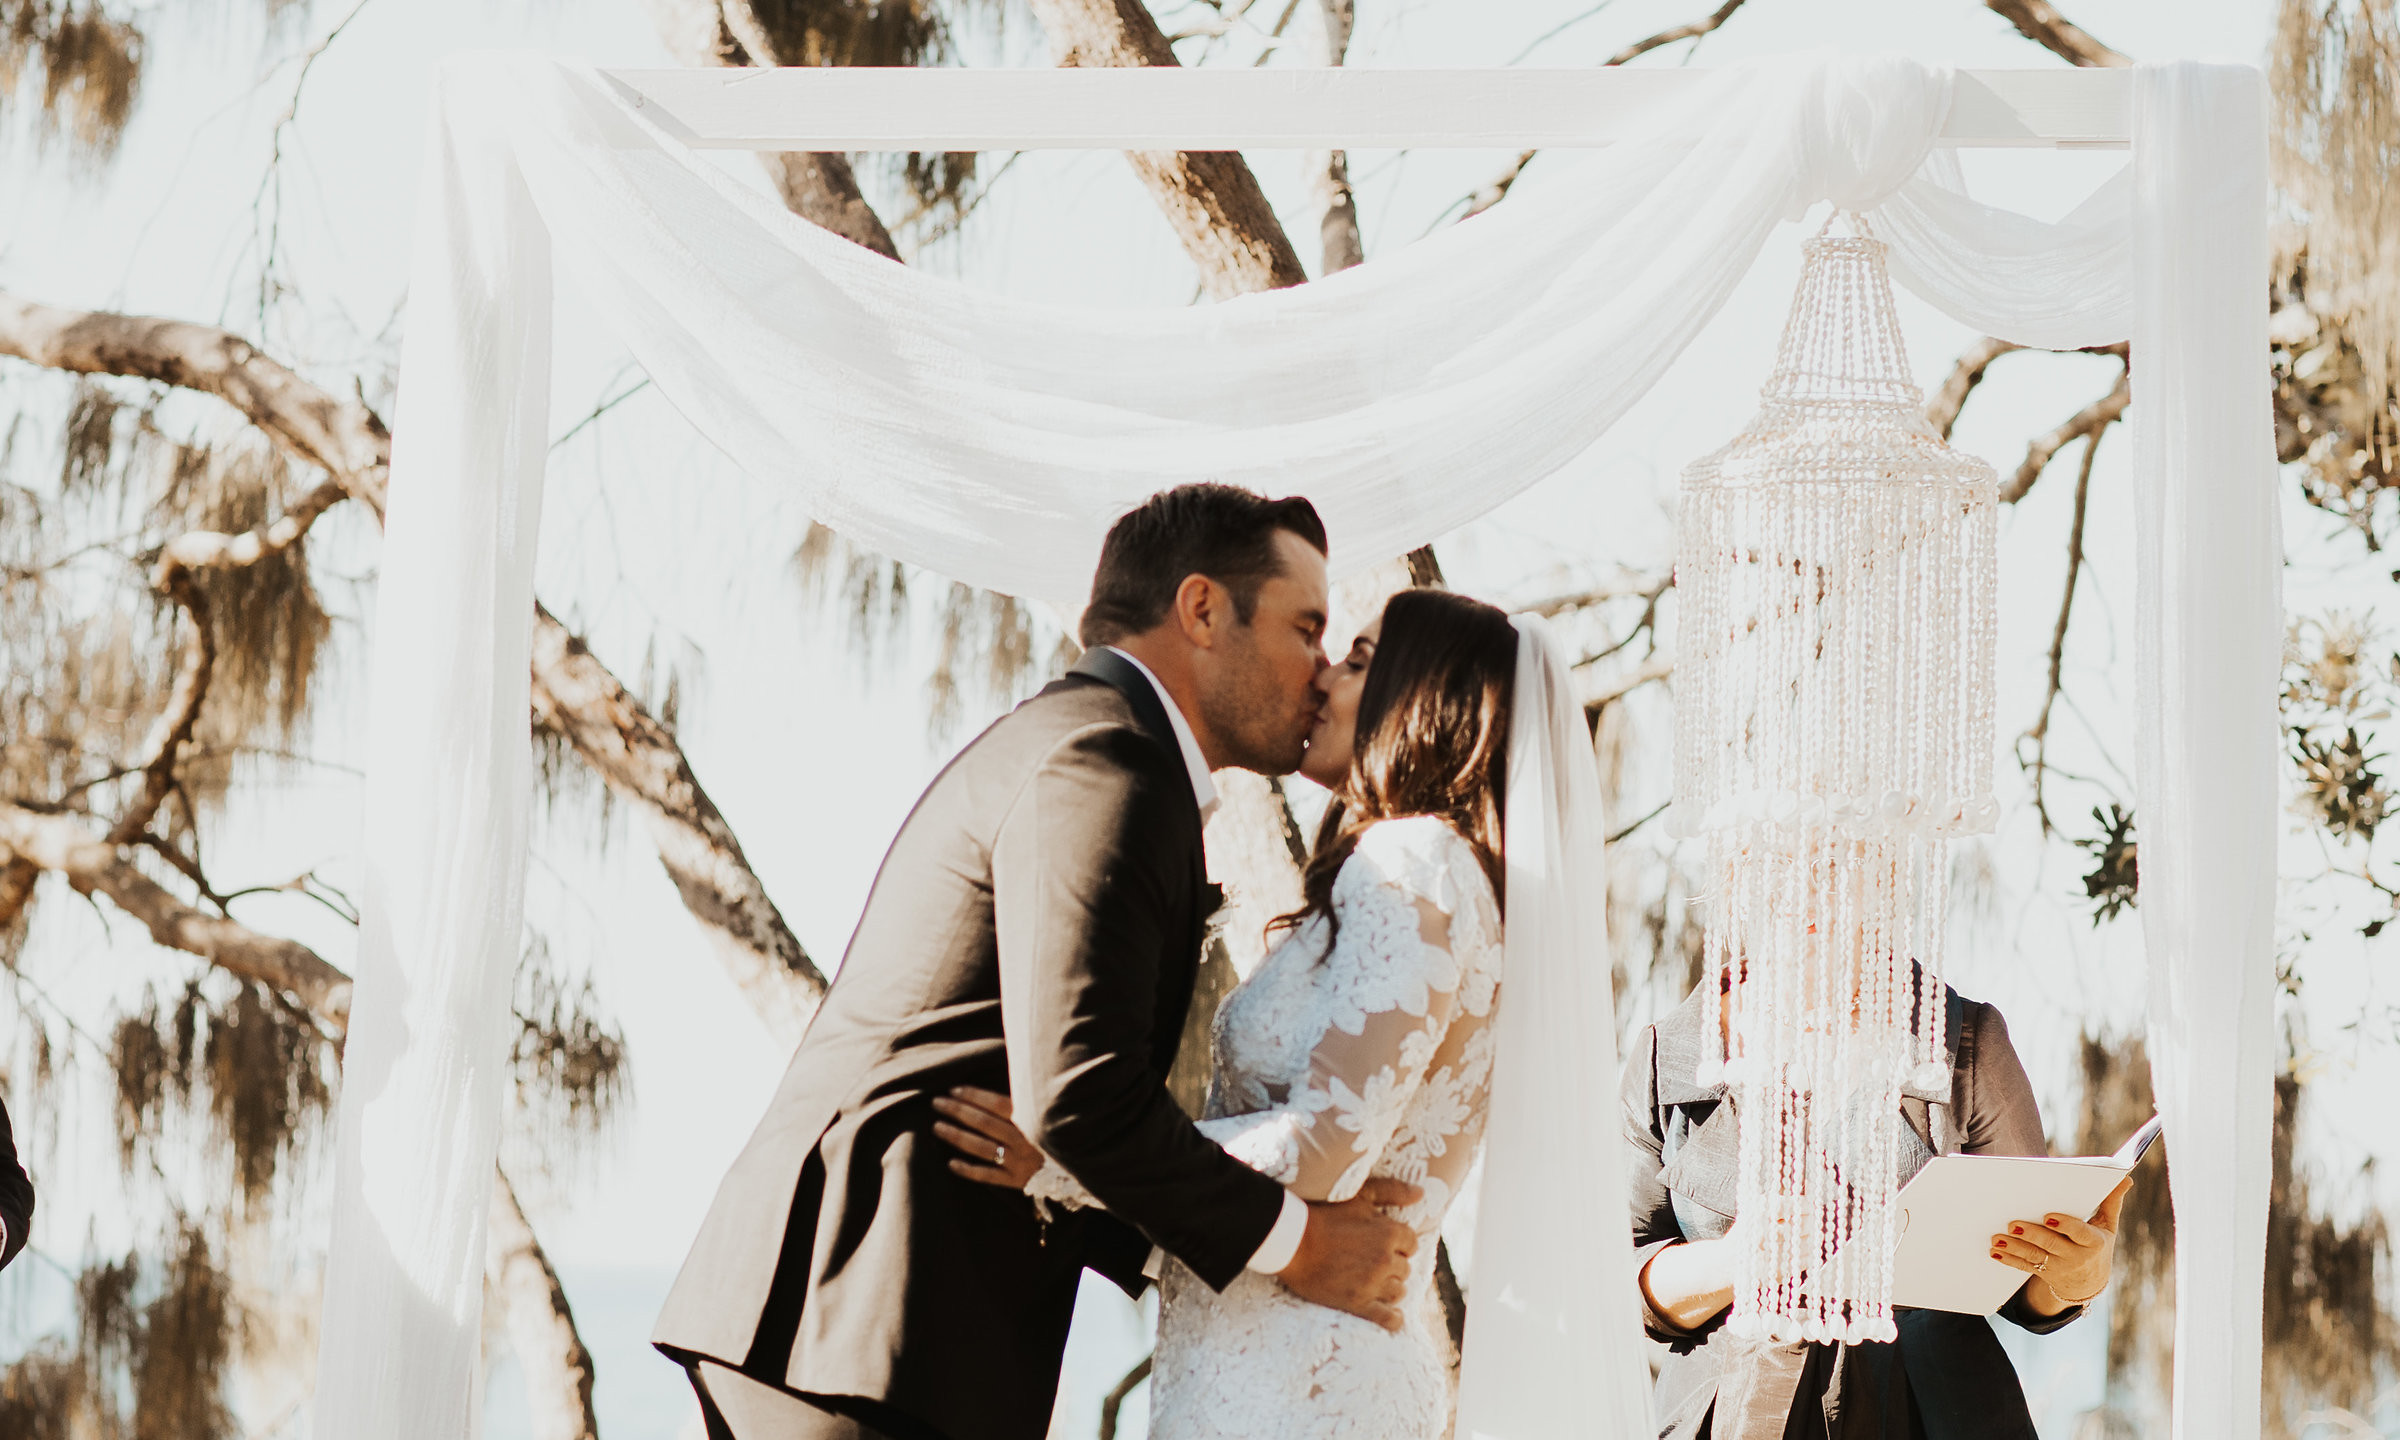 Bride and Groom kiss for the first time as husband and wife at a Noosa beach wedding ceremony